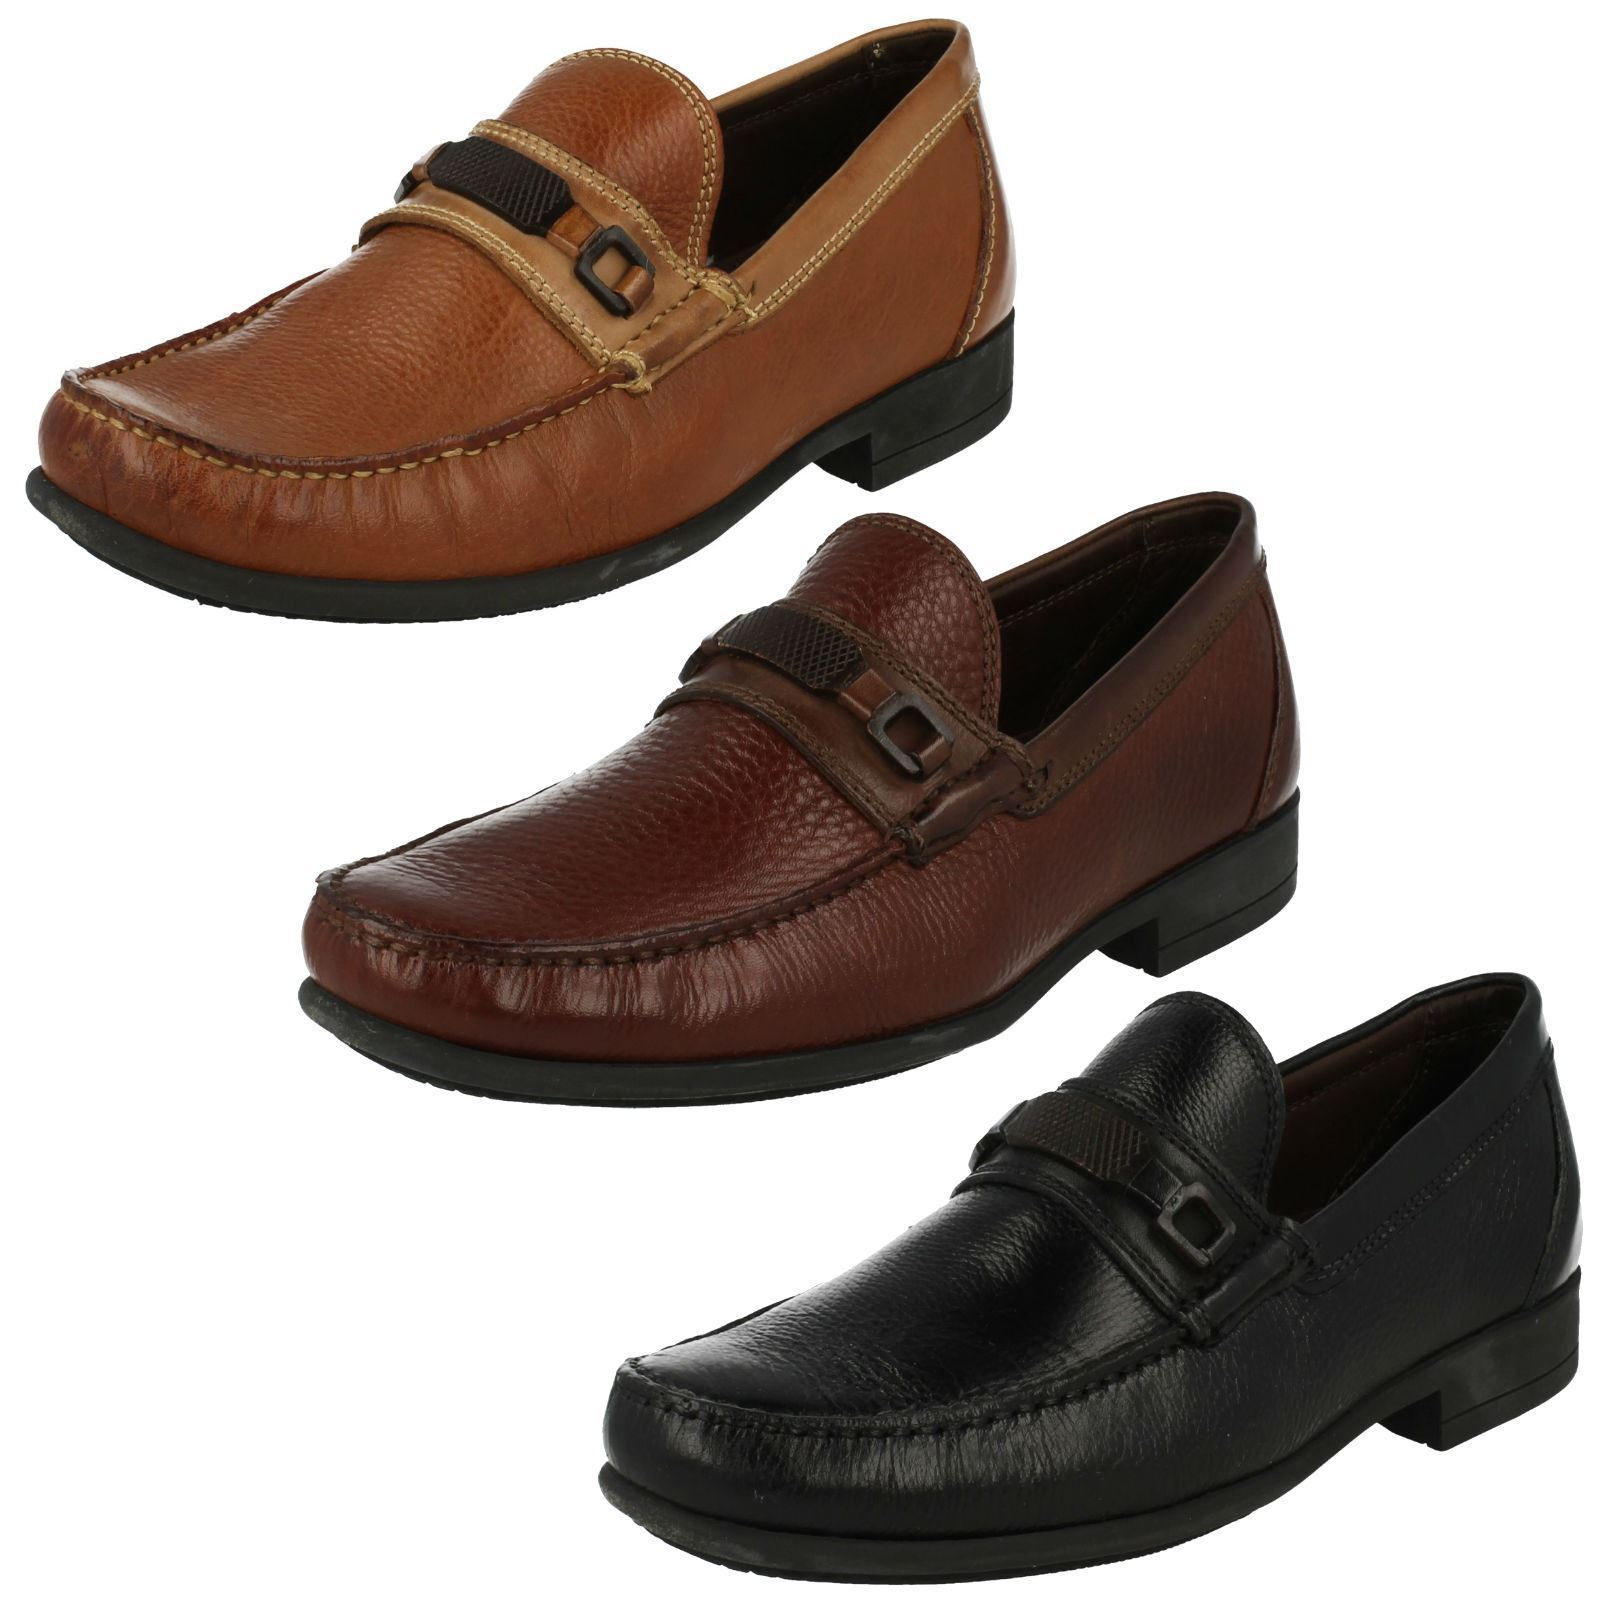 Mens Anatomic & Co Formal Shoes 'Lins'